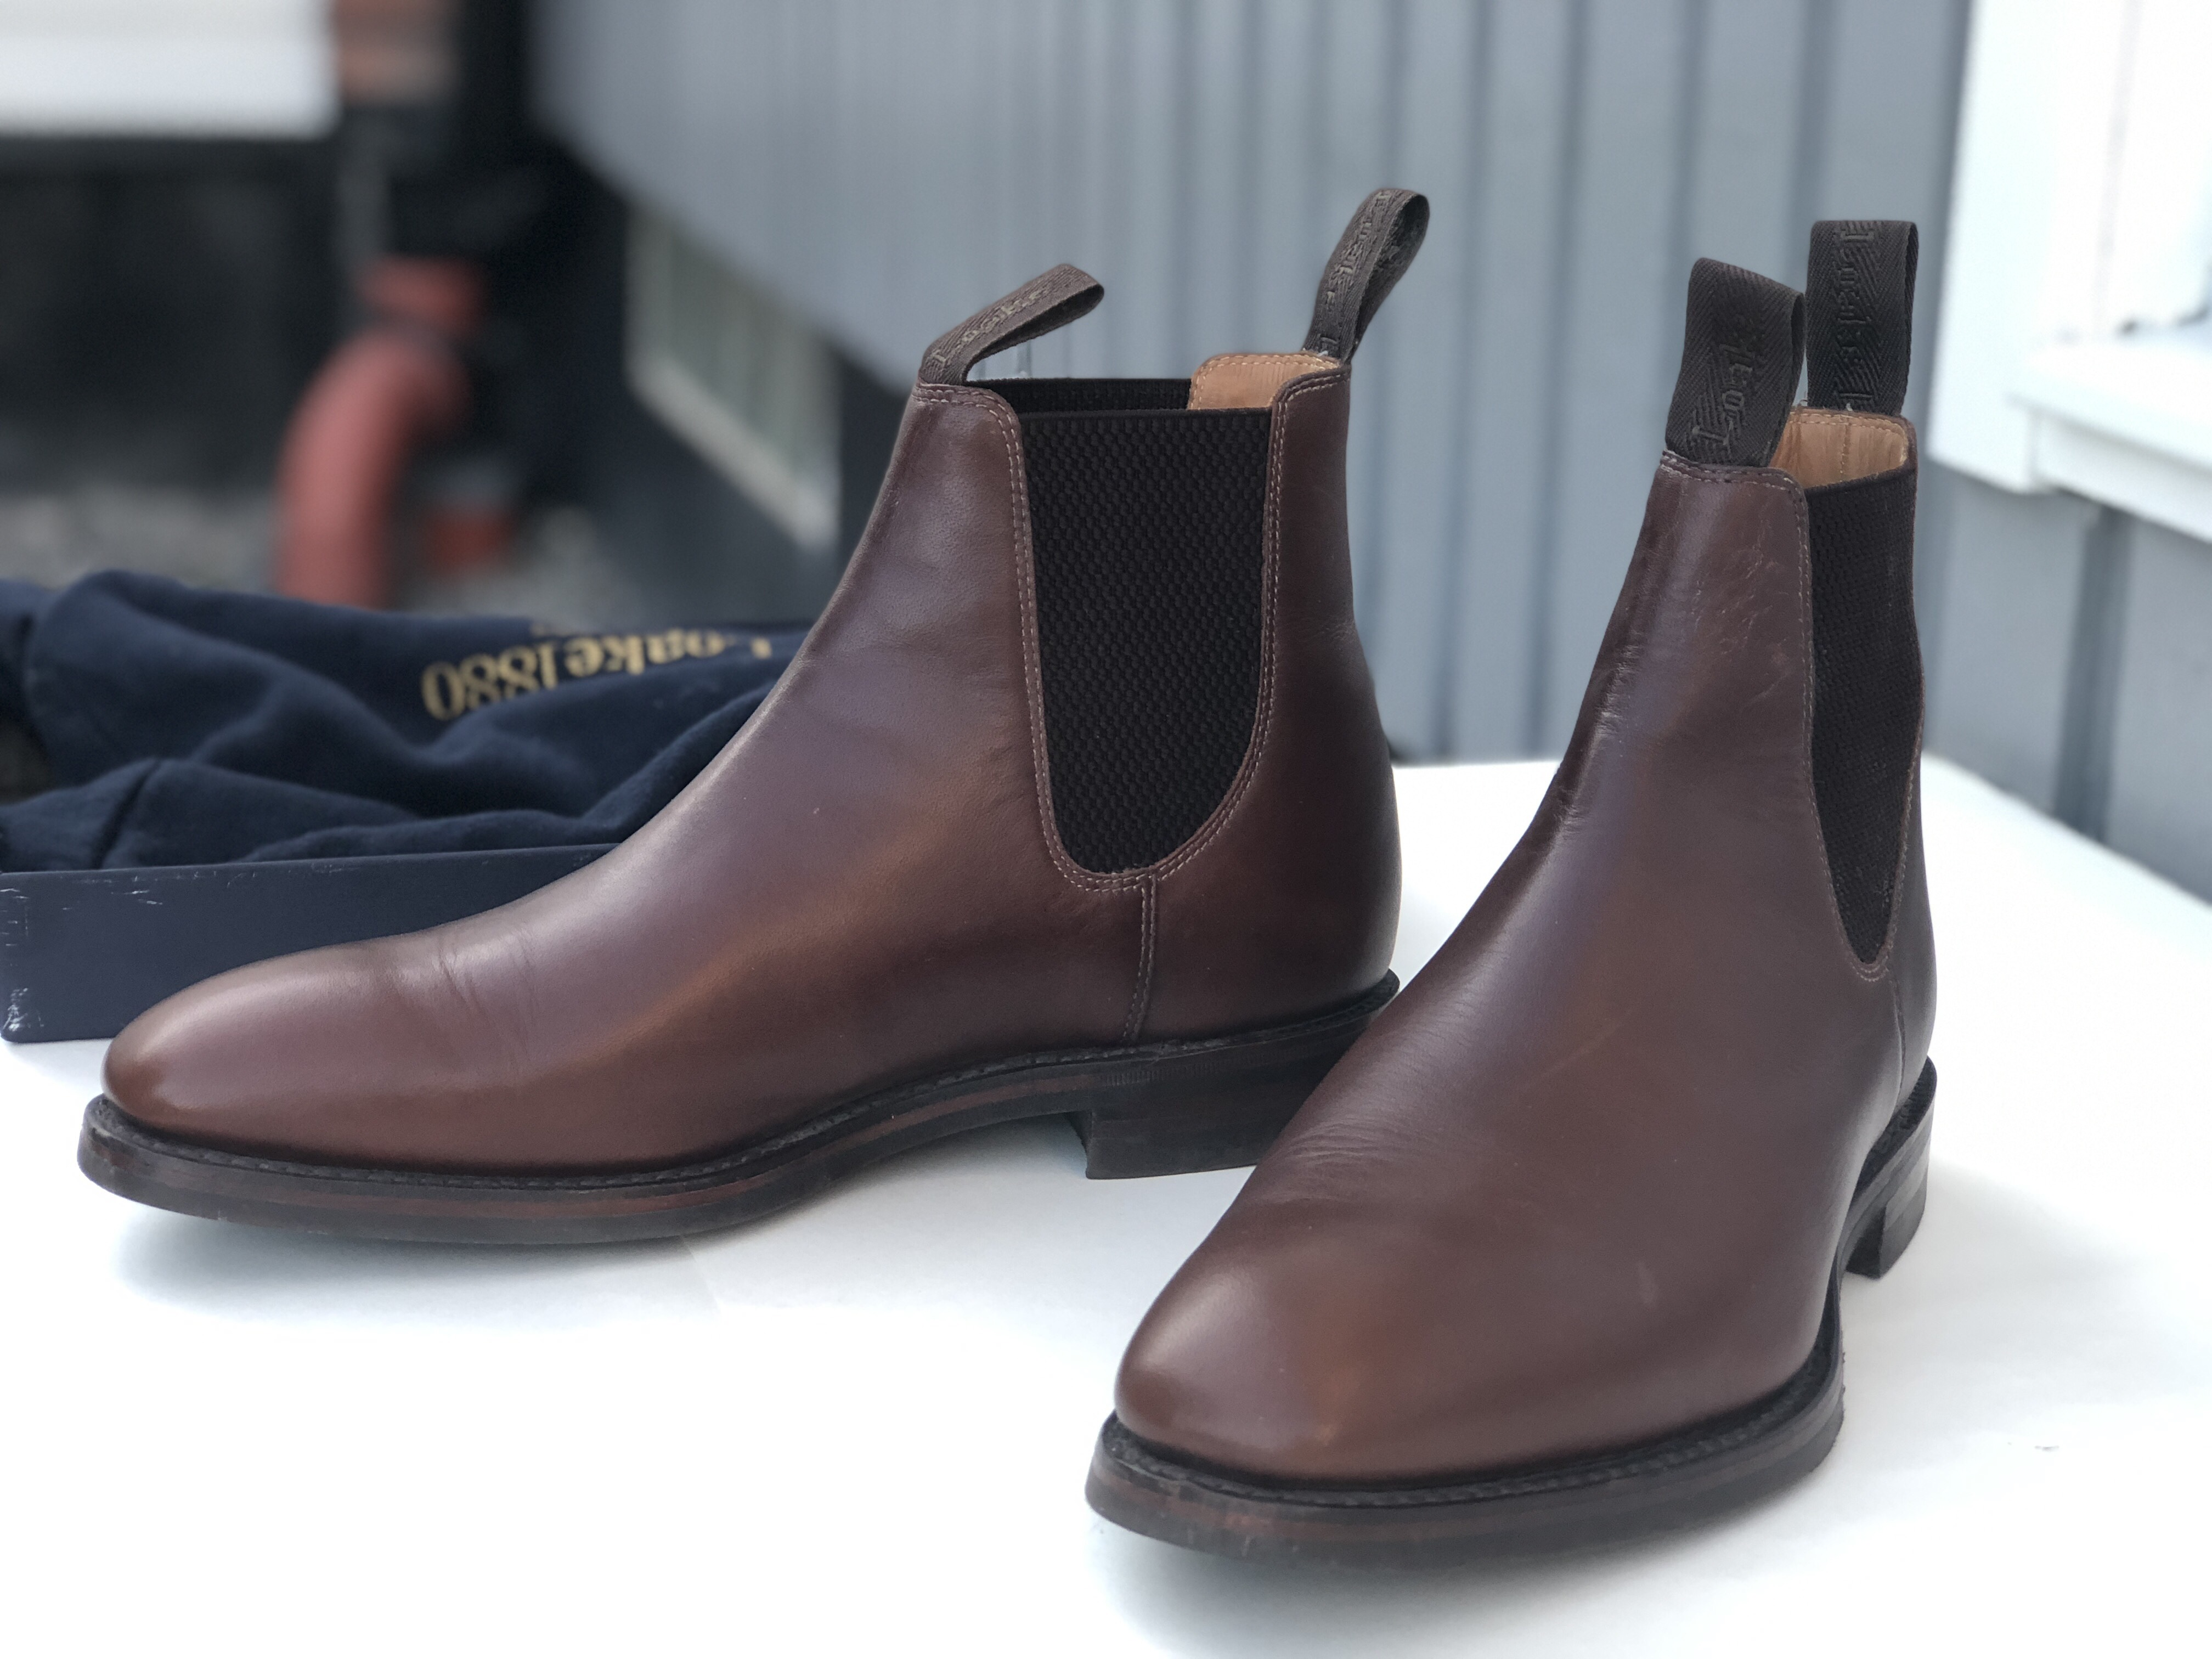 Loake 1880 Chatsworth Chelsea Boots in